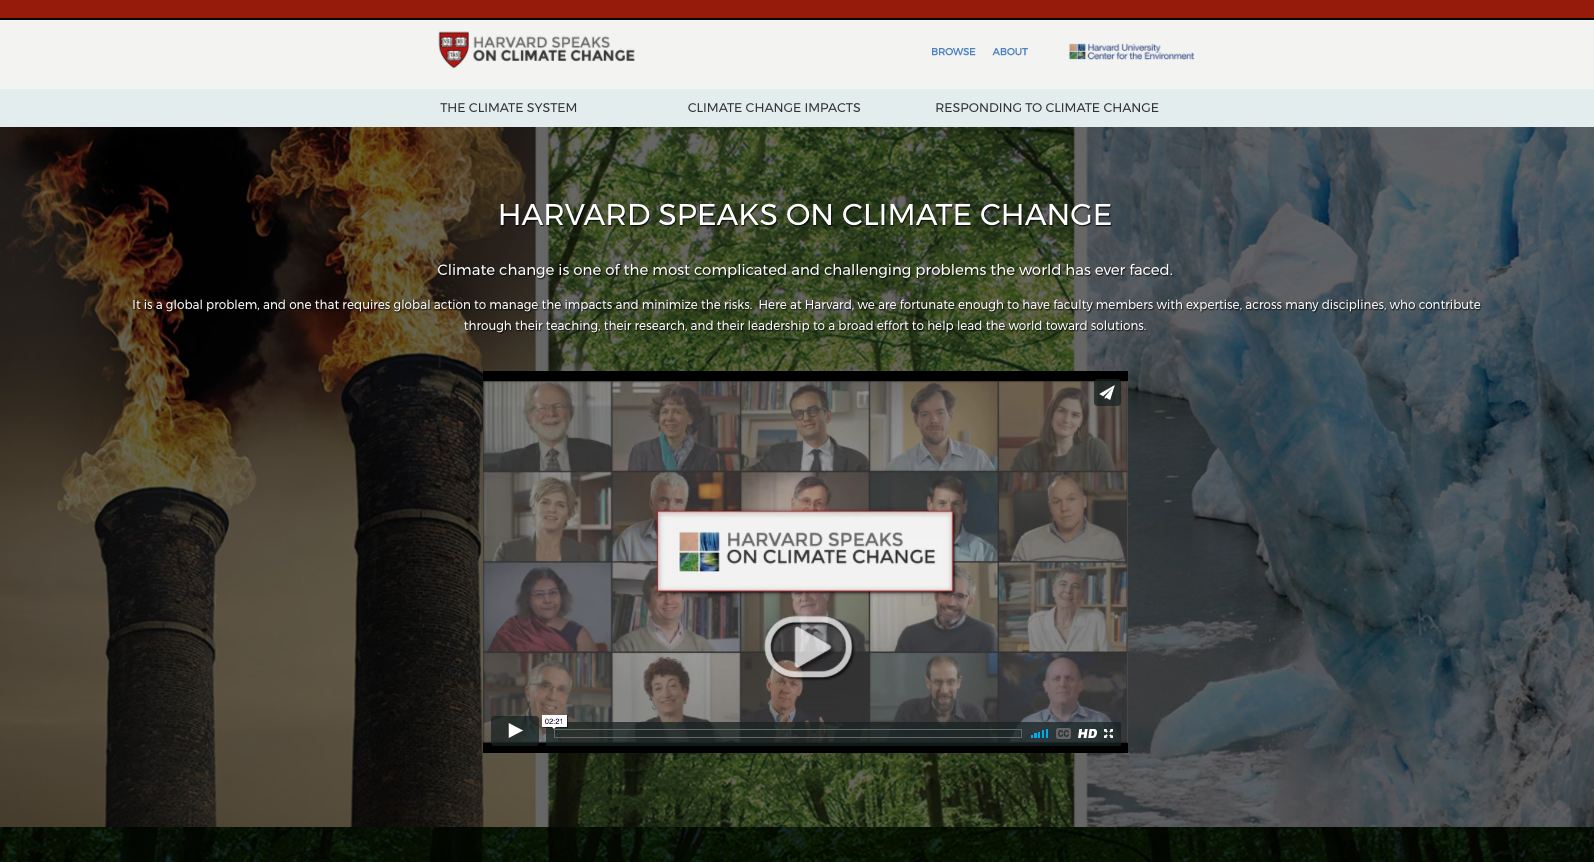 HARVARD SPEAKS ON CLIMATE CHANGE